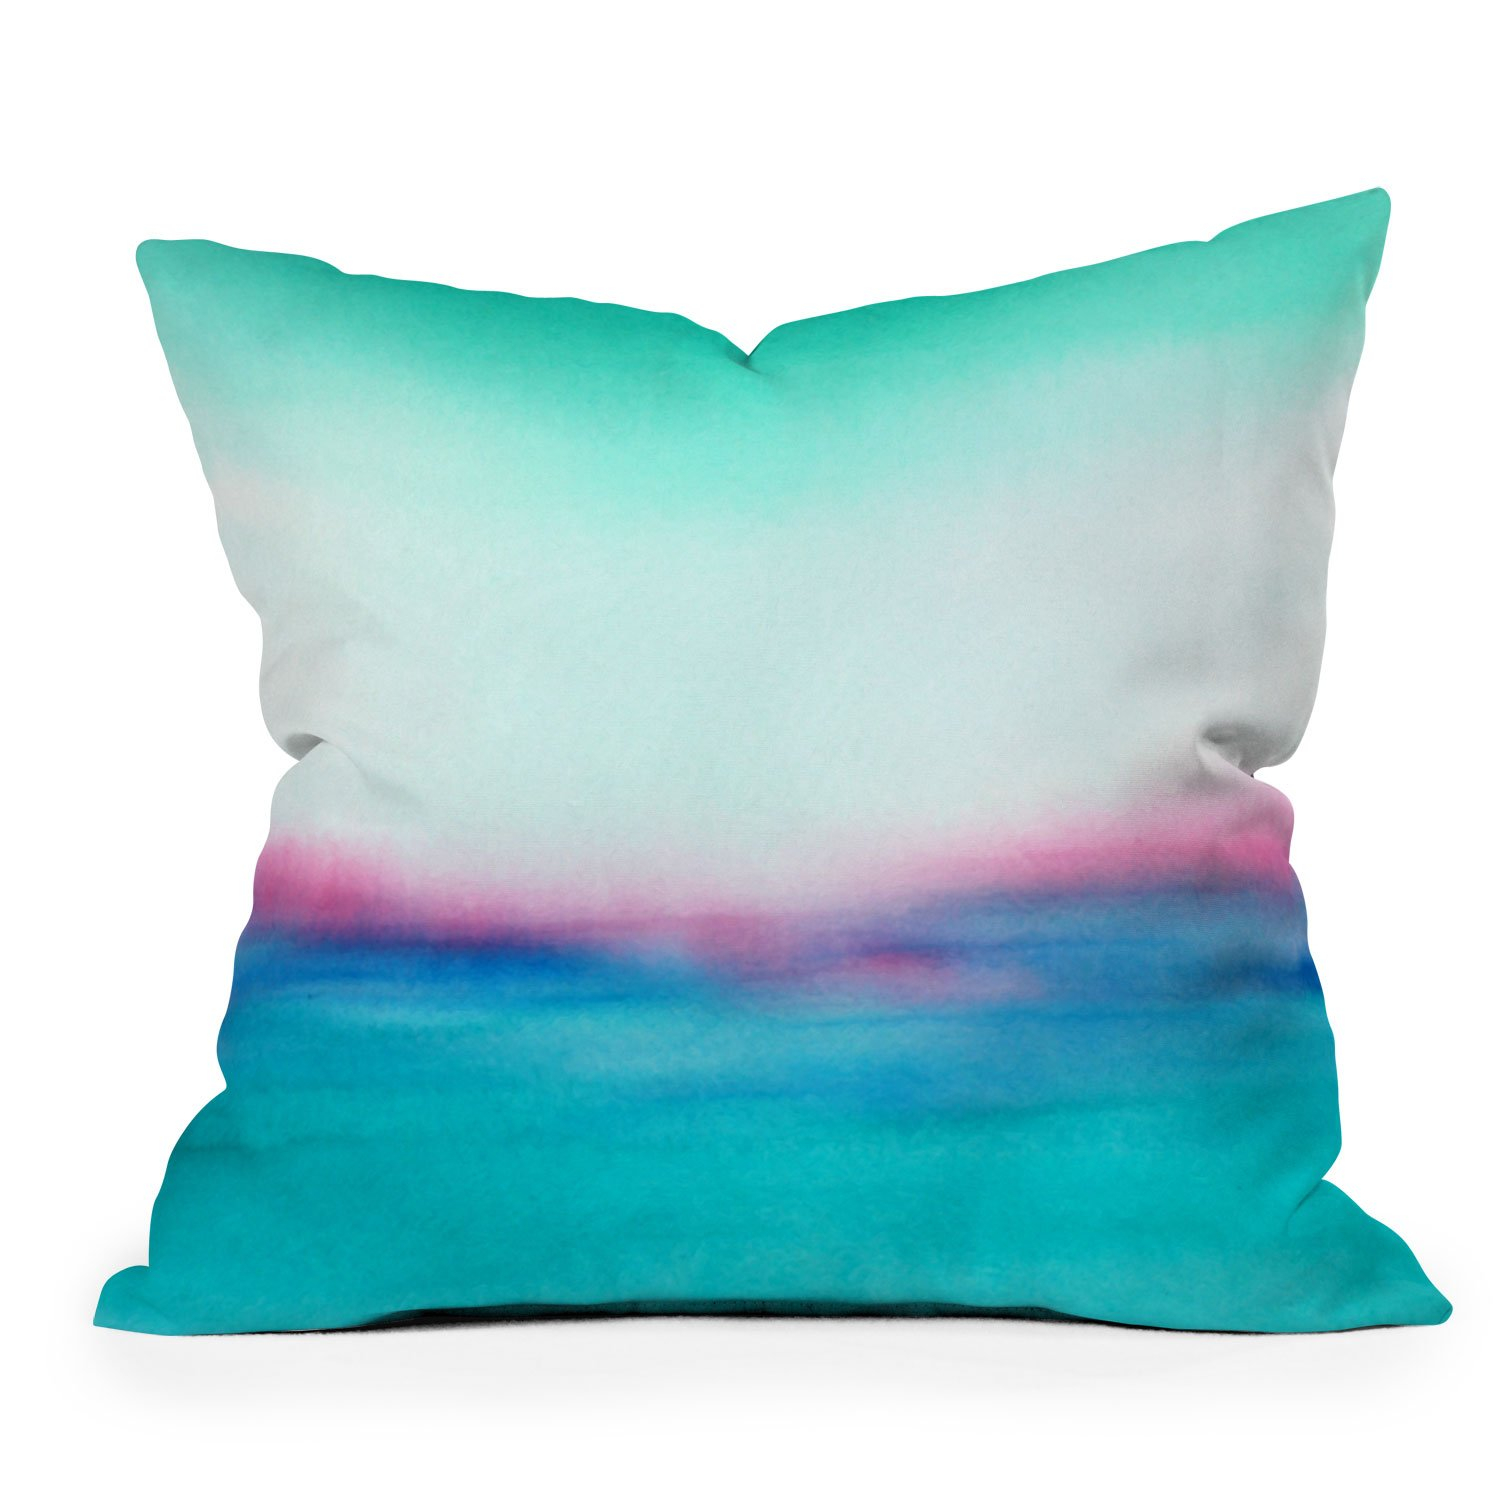 Image of Laura Trevey In Your Dreams Throw Pillow